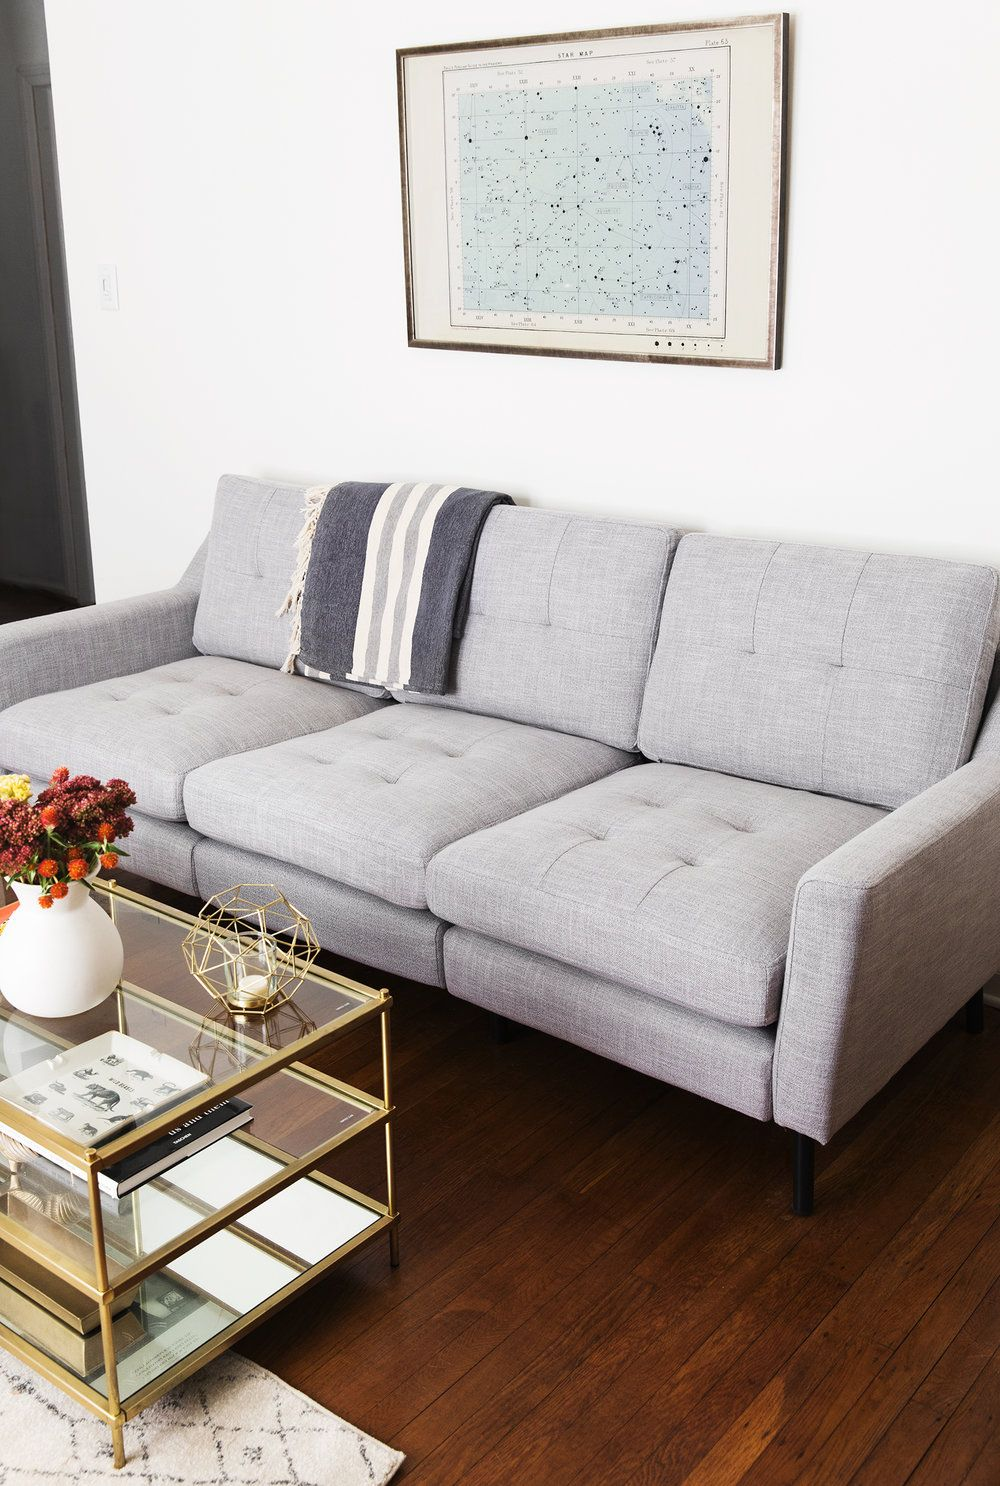 Burrow Couch Review Home Decor Pet Friendly Living Room Simple